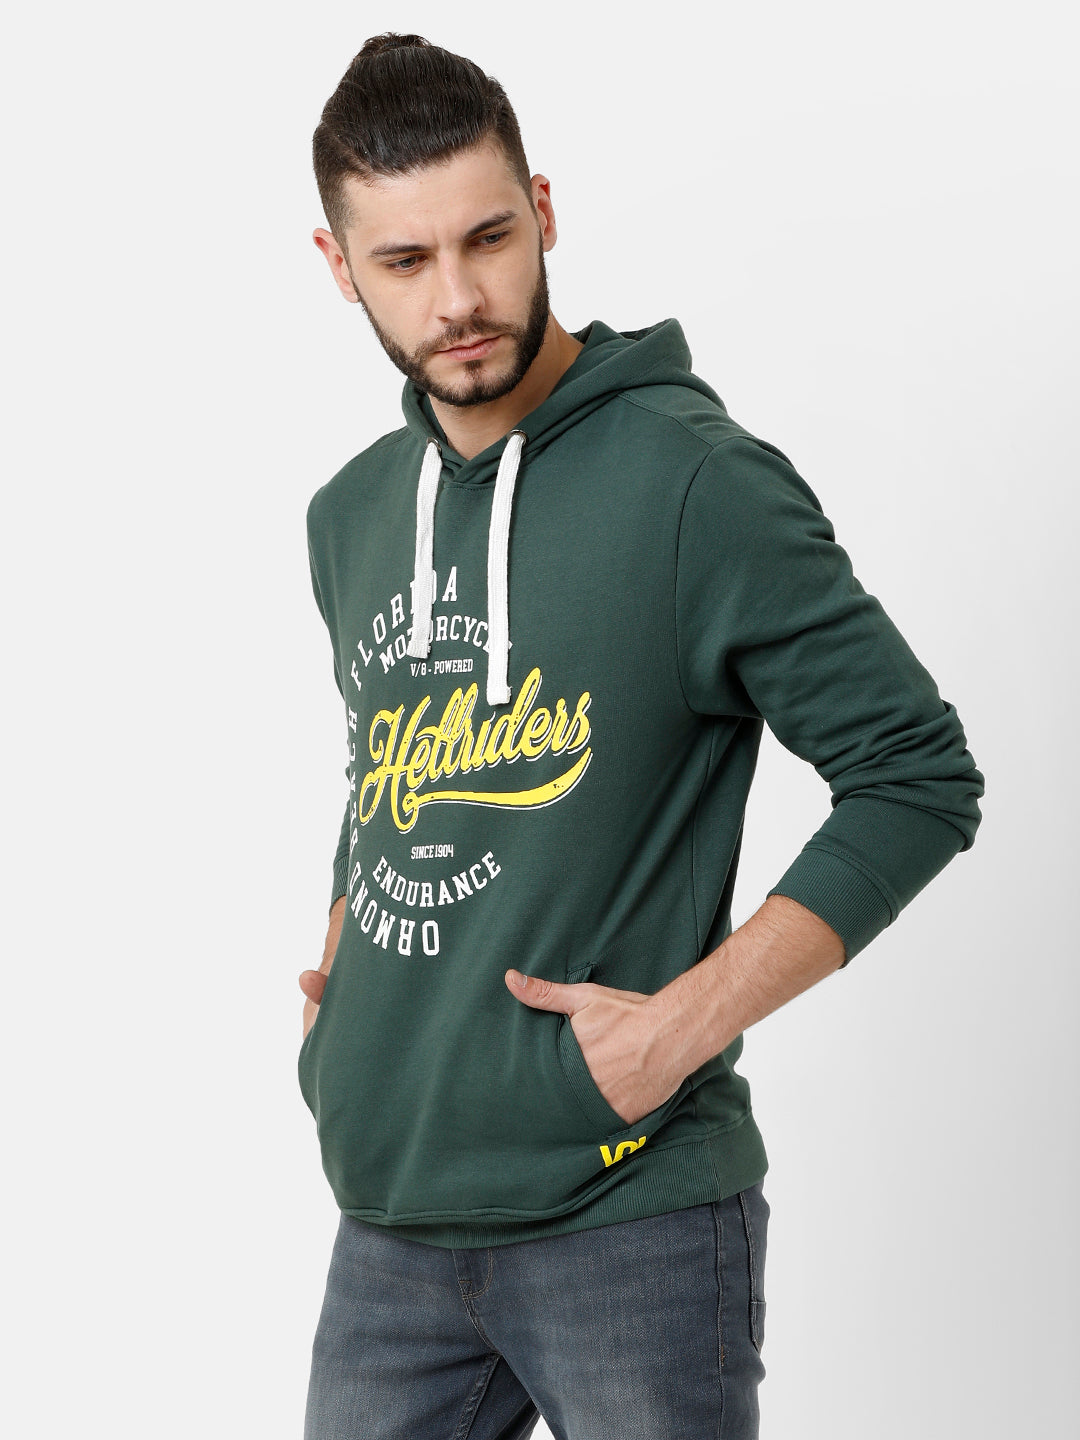 Plain Green Sweatshirt with Graphic print